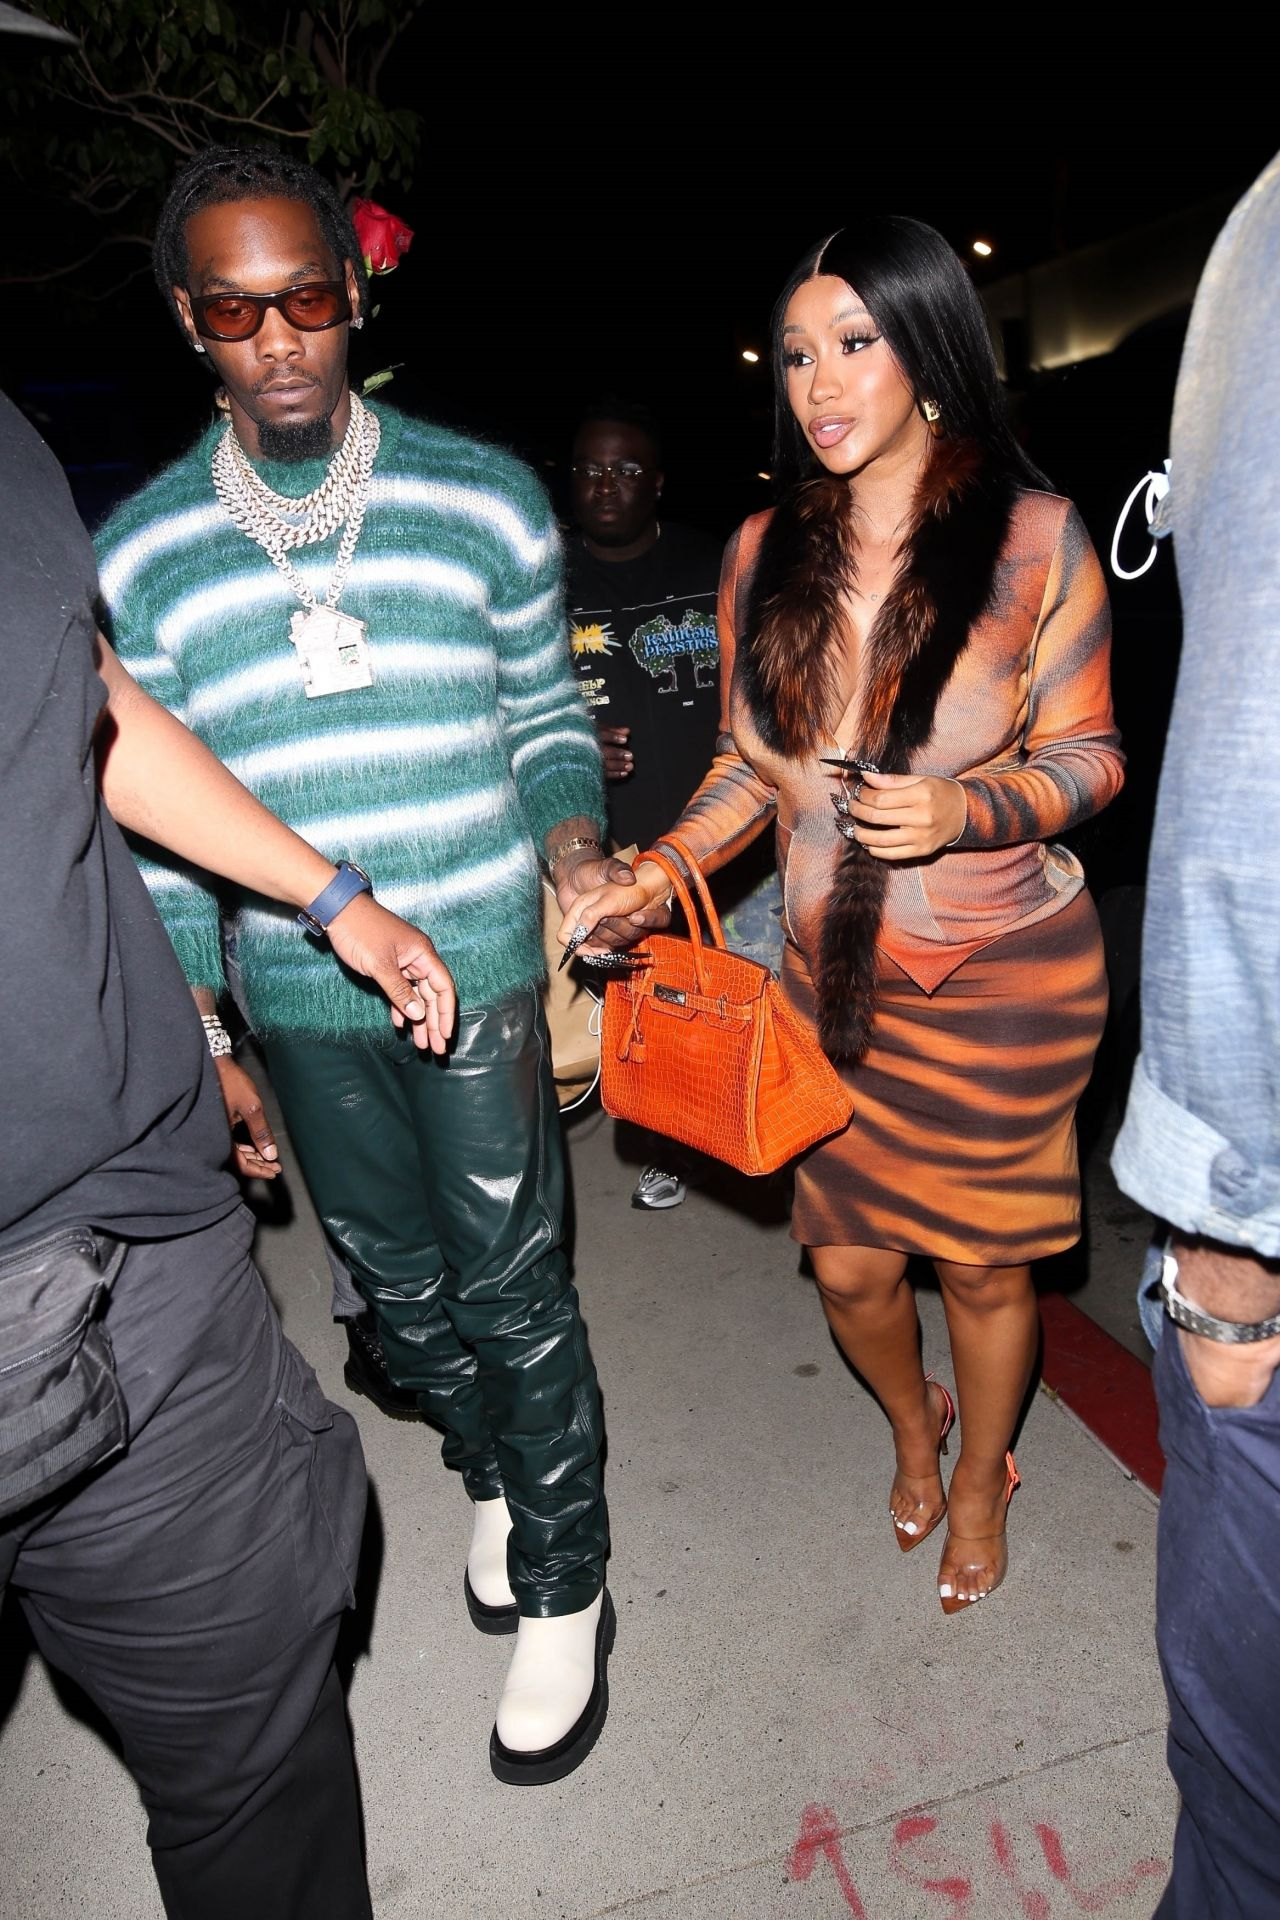 cardi-b-and-offset-boa-steakhouse-in-la-06-27-2021-0